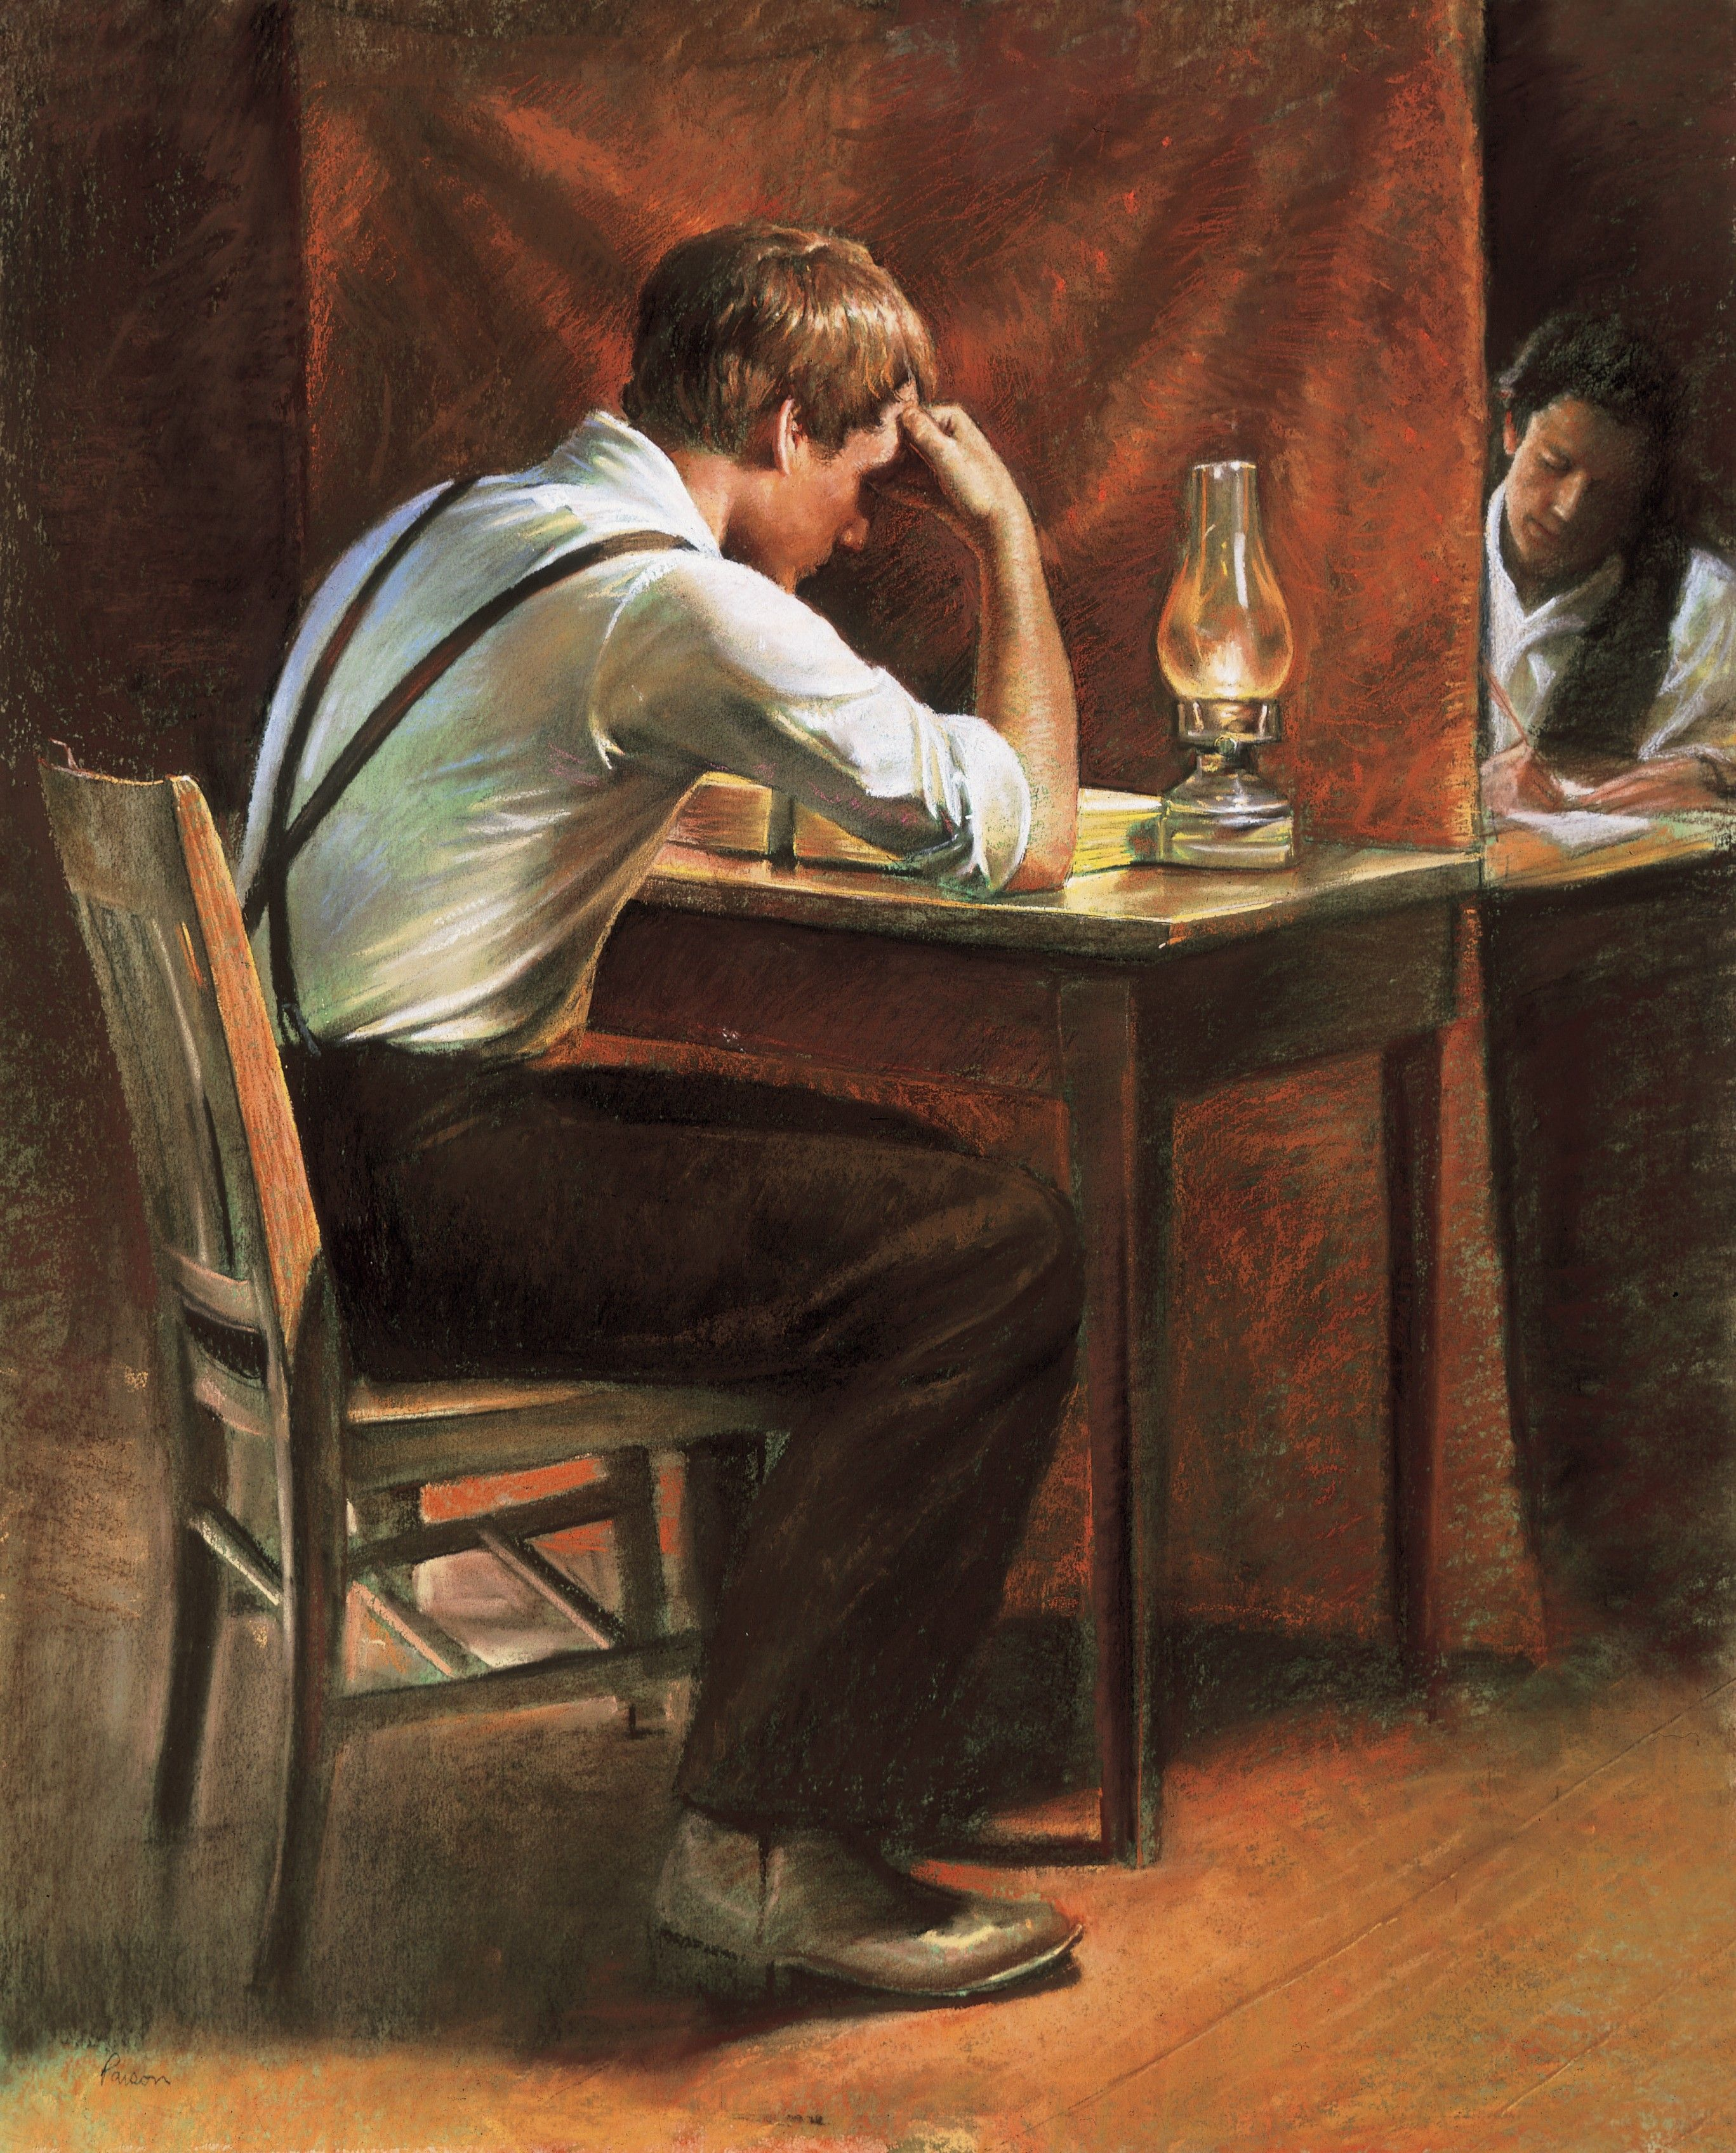 Joseph Smith Translating (Joseph Smith Translating the Gold Plates), by Del Parson; Primary manual 5-14